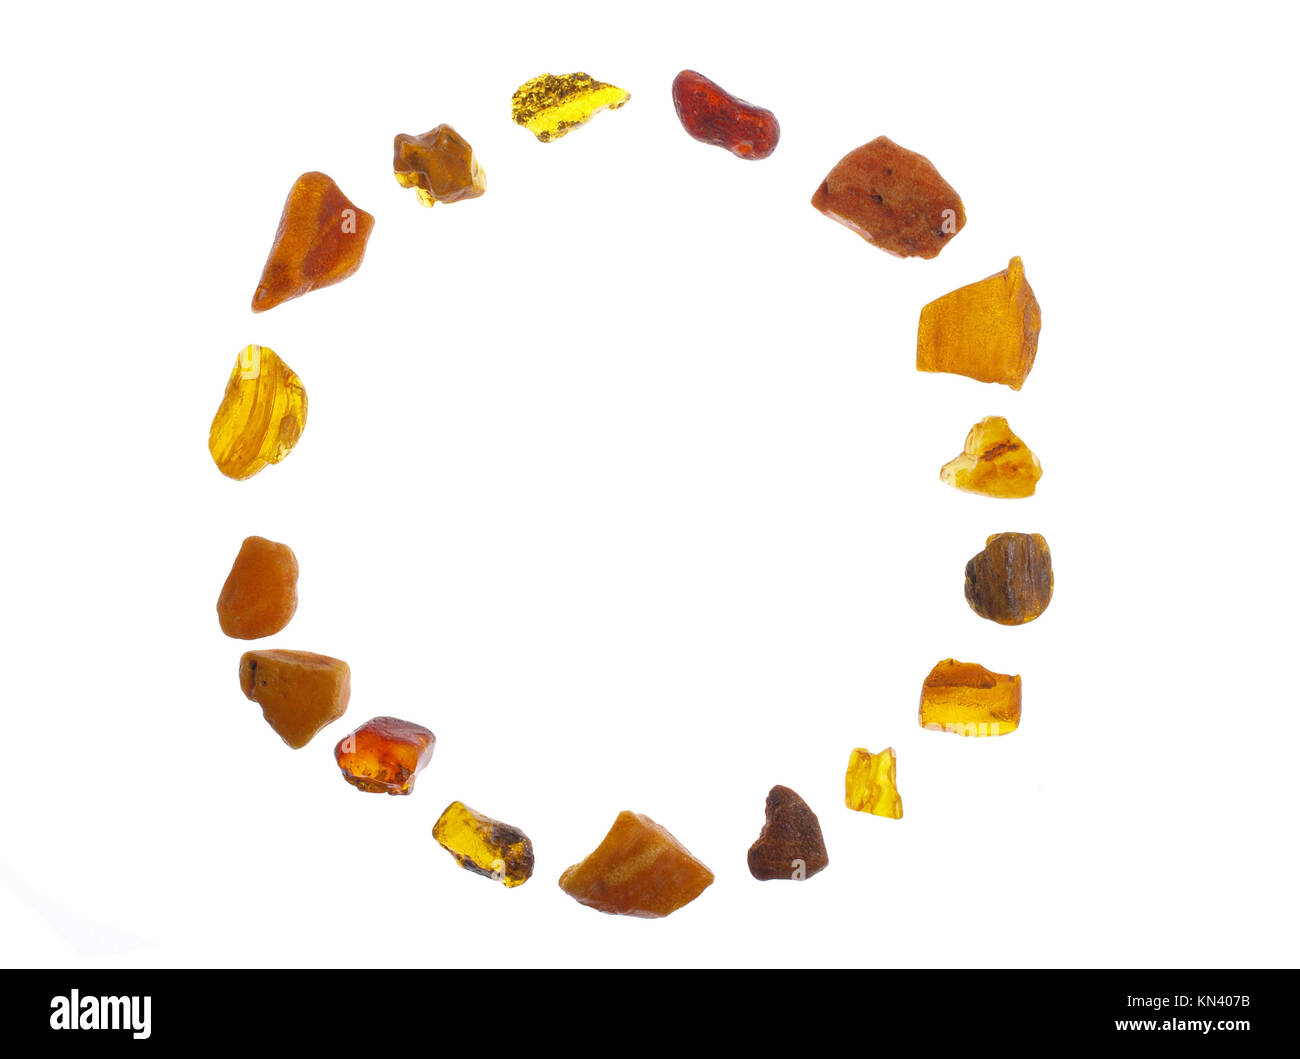 Amber, stone on white background, studio isolated photo. - Stock Image